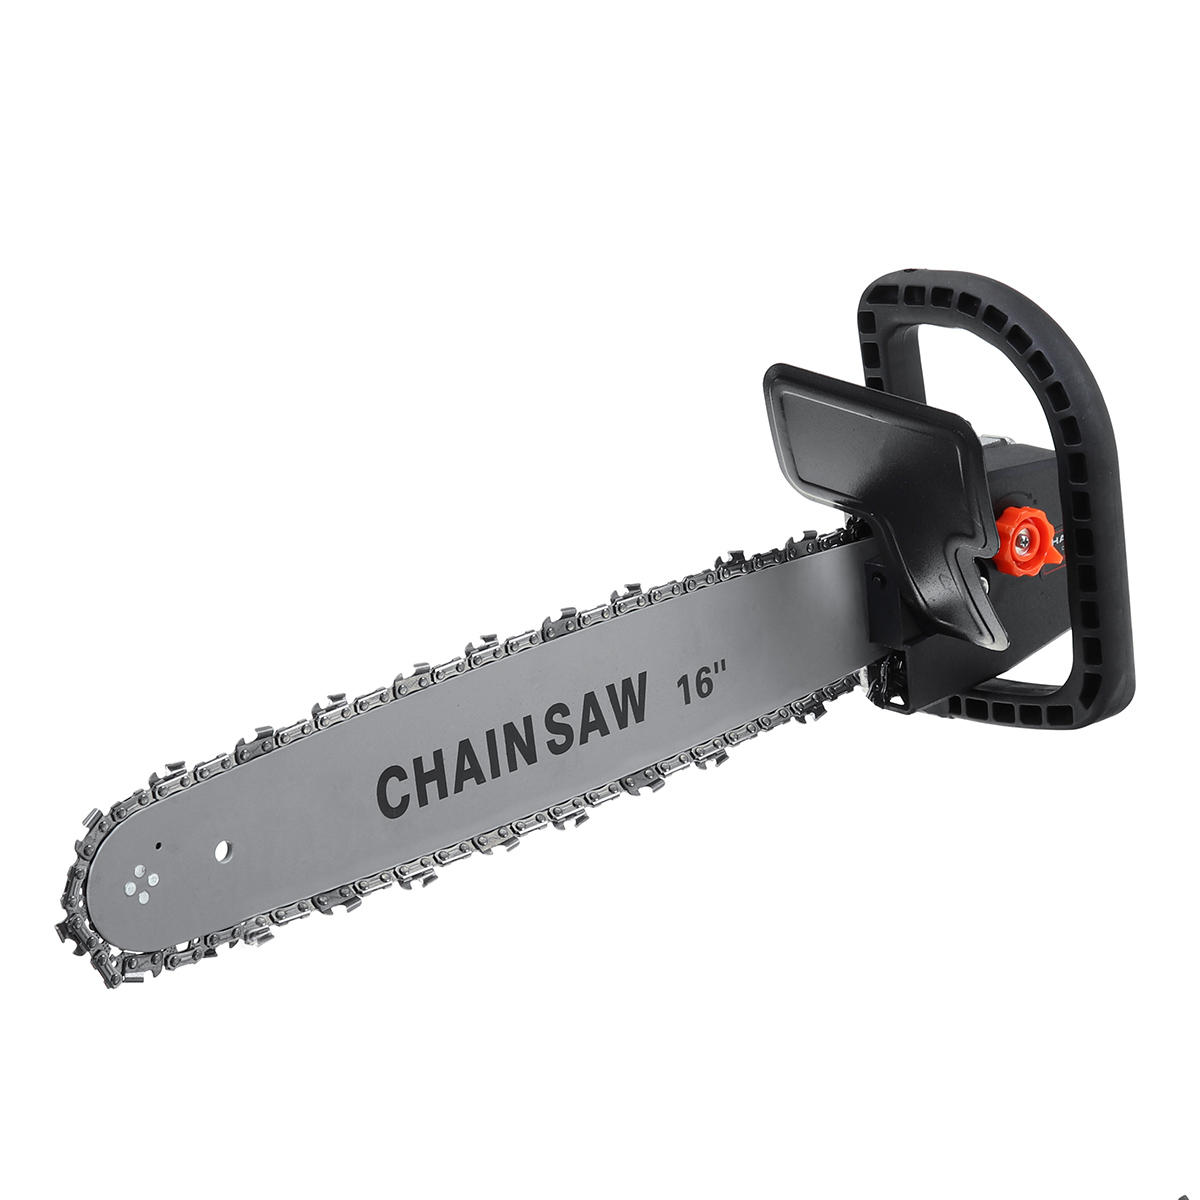 16 Inch Electric Chainsaw Bracket Stand Adaptor Changed Woodworking Chain saw kit for Angle Grinder